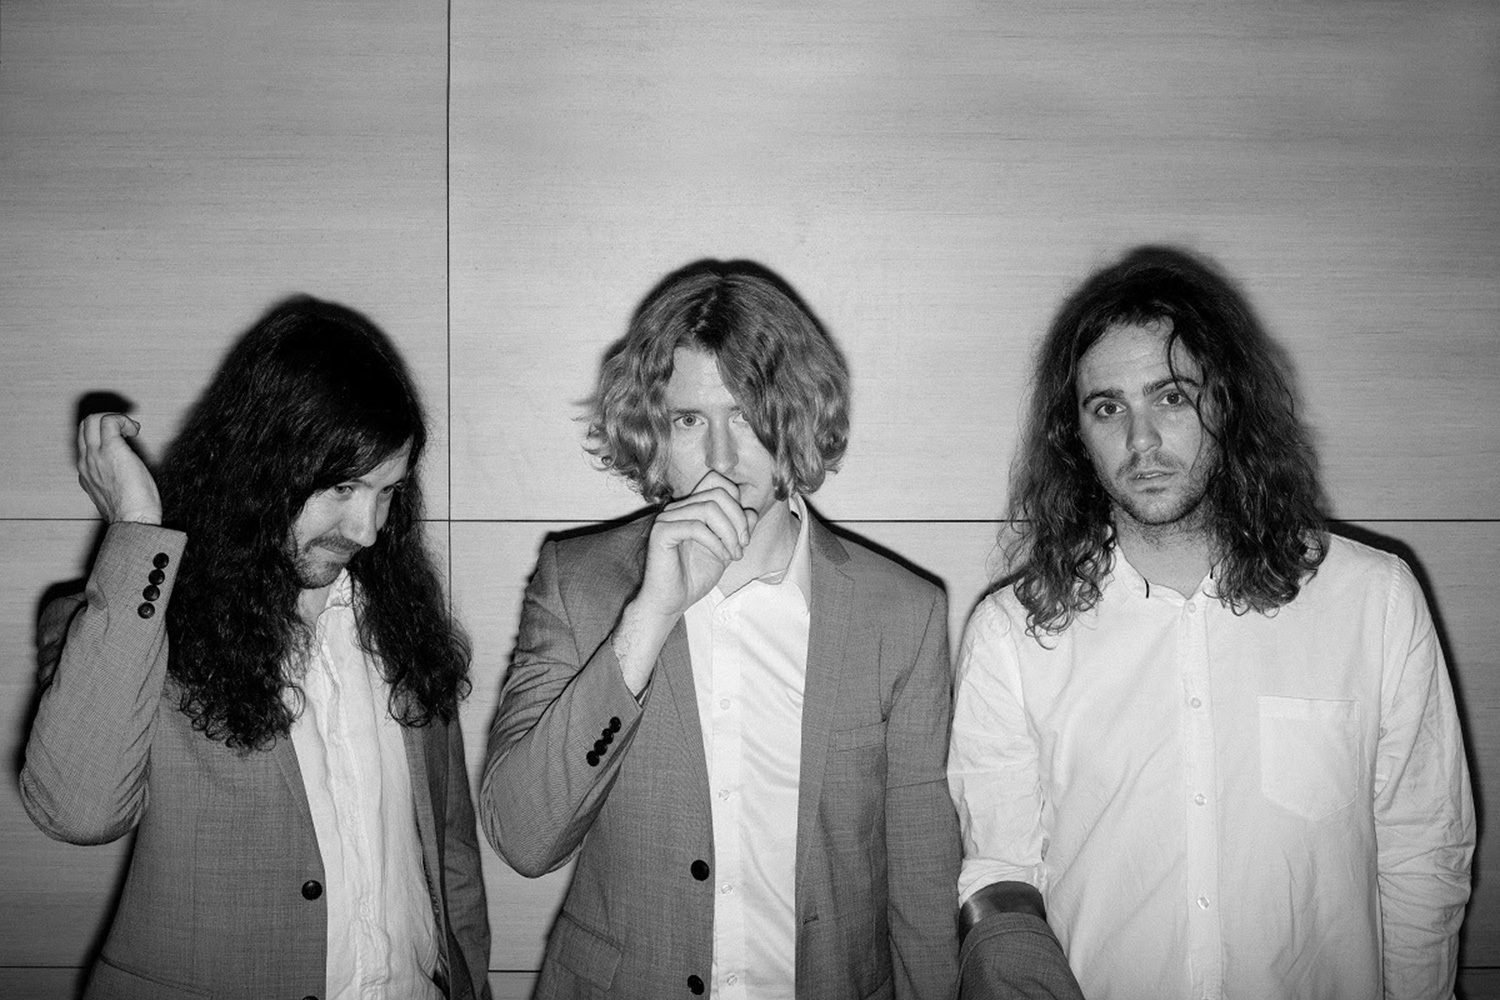 DZ Deathrays have teamed up with The Bronx's Matt Caughthran for new single 'Year of the Dog'